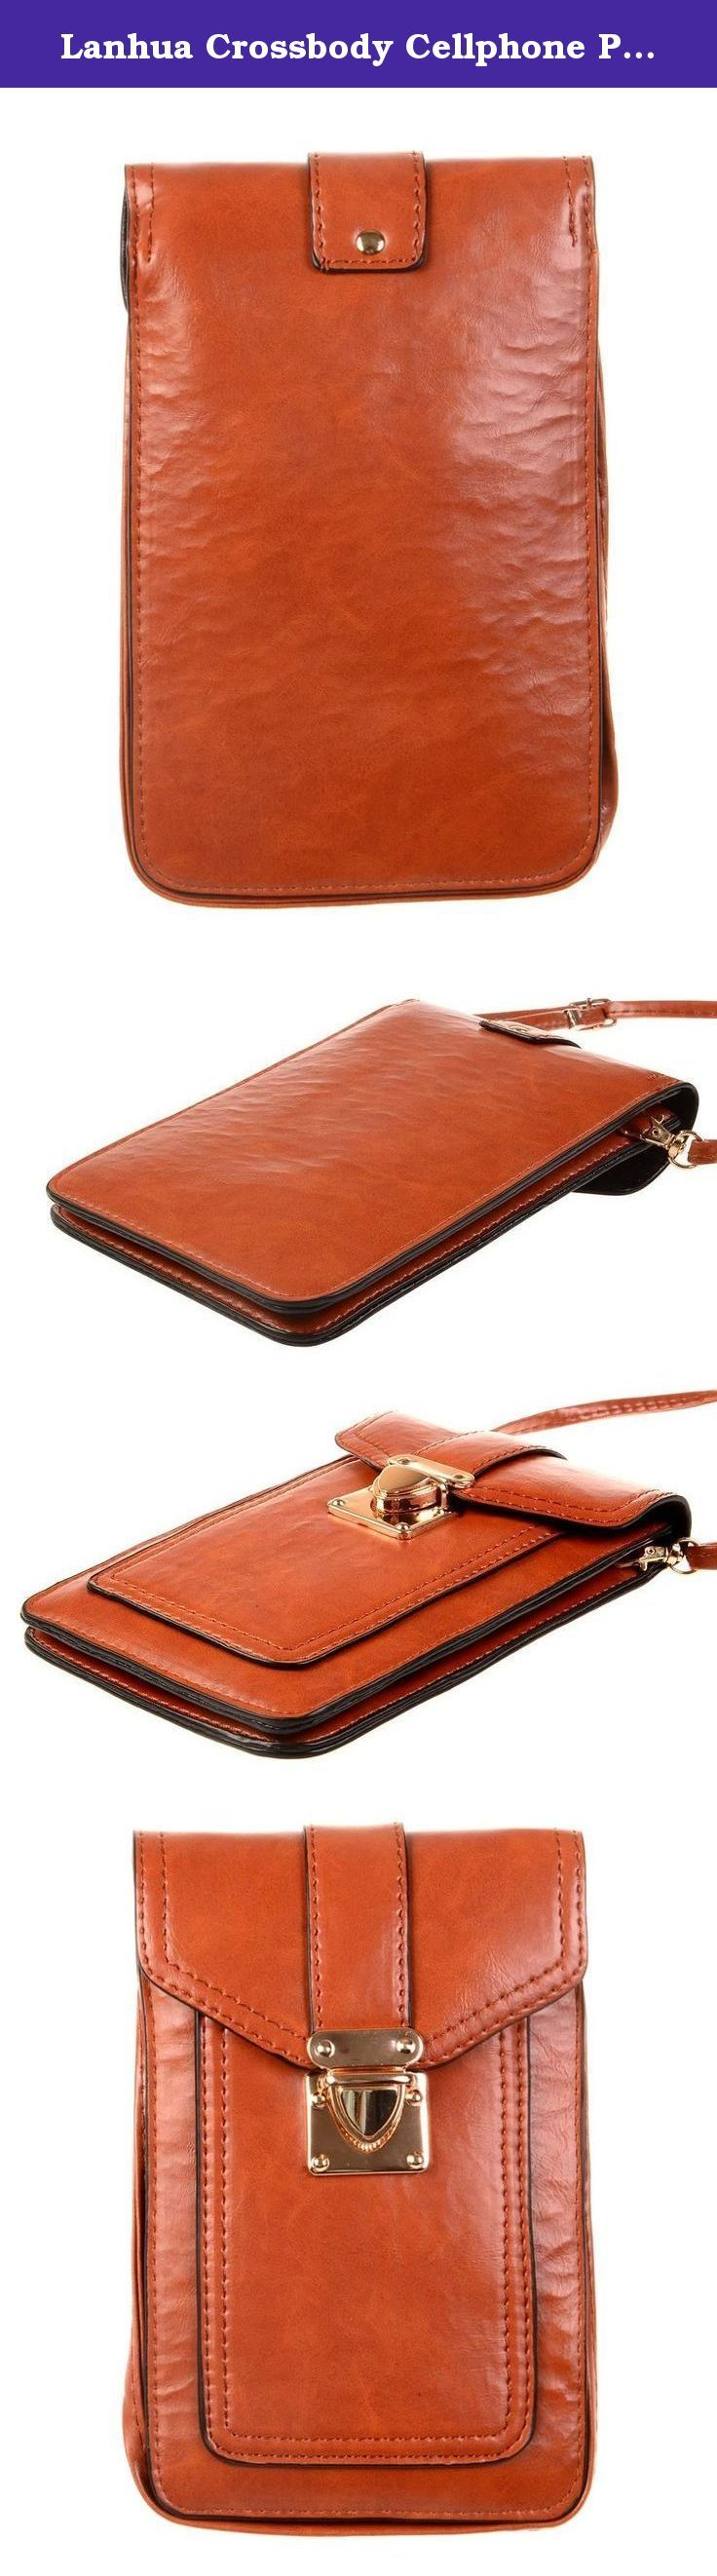 """Lanhua Crossbody Cellphone Pouch - Nylon Mini Cross Body Shoulder Bag Pouch Wallet for Carrying Money Key Cards Samsung S7 ,Iphone 6g/6s/5g/4g Cellphone below 5.5"""" , Brown. Sports Armband fits any size mobile phones MP3 MP4 IPOD below 6,3 inch (with a case) ."""